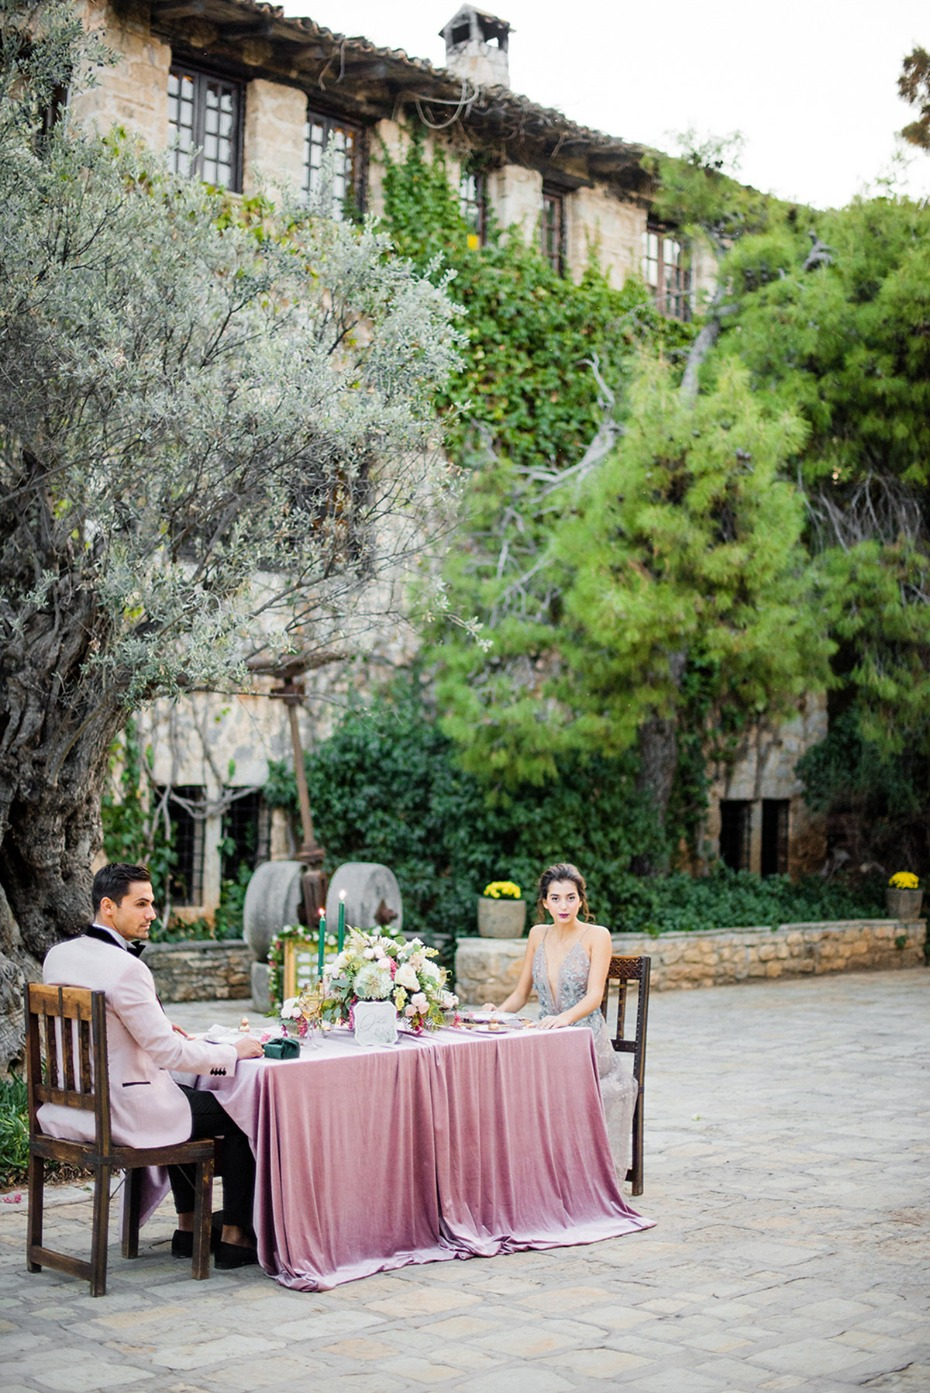 wedding ideas for your late fall Athens Greece wedding